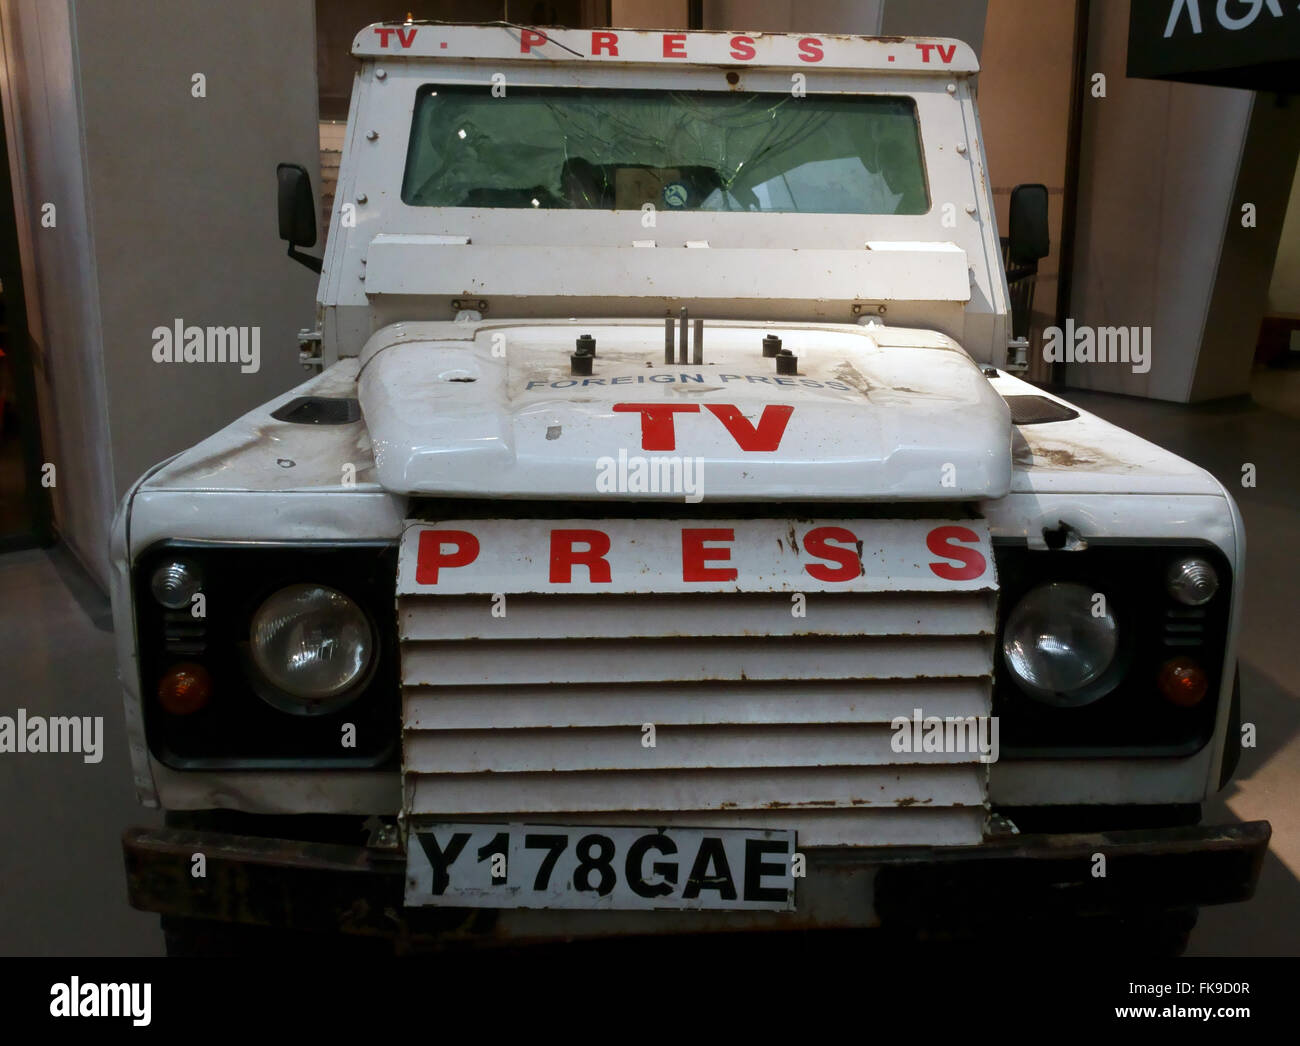 A landrover used by news crews in war zones make a stark display in the Imperial War Museum foyer London UK - Stock Image